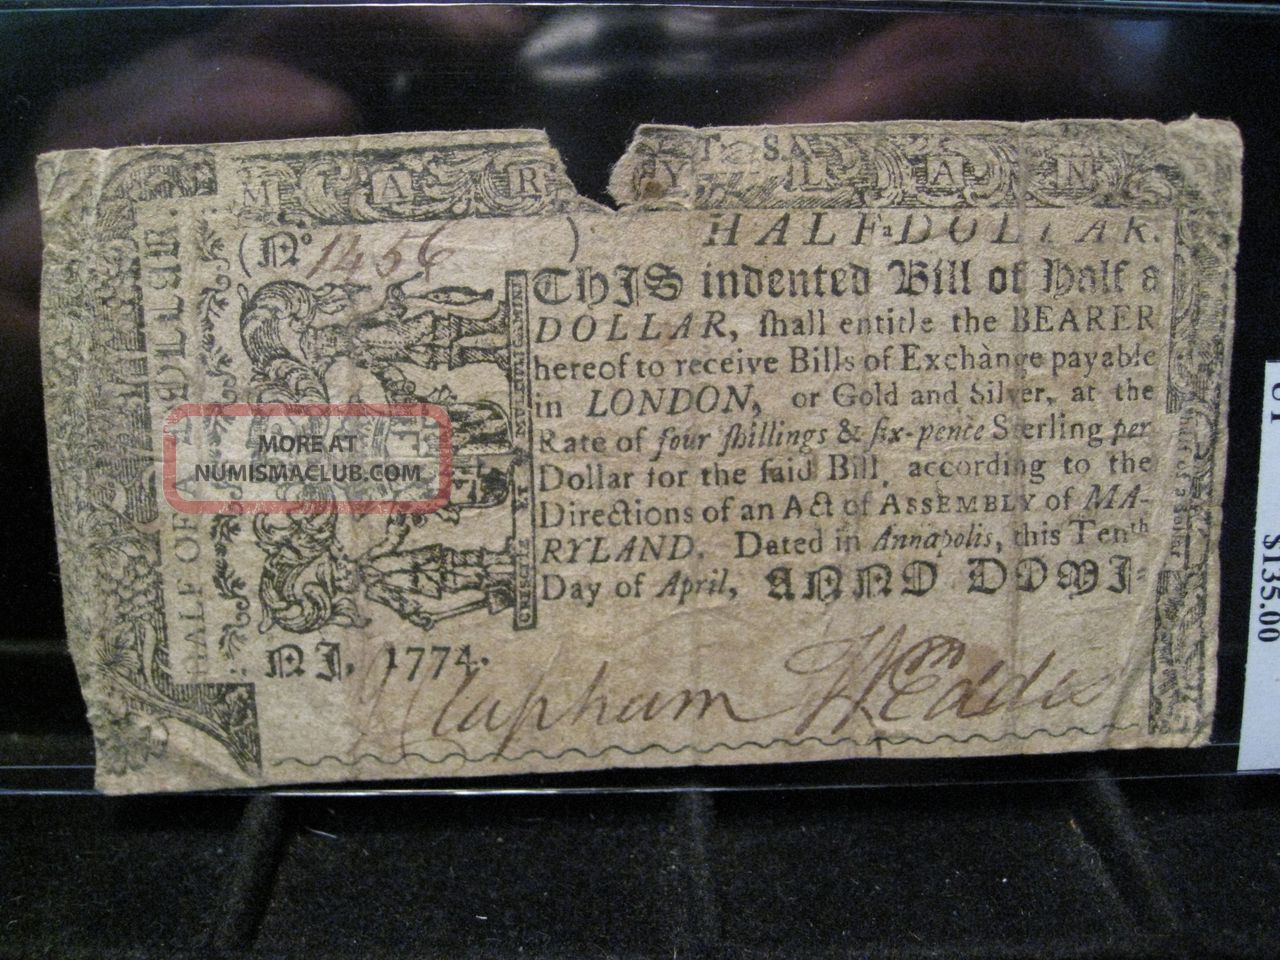 1774,  April 10 - Maryland Us Colonial Note.  Half Dollar.  Serial 1456. Paper Money: US photo